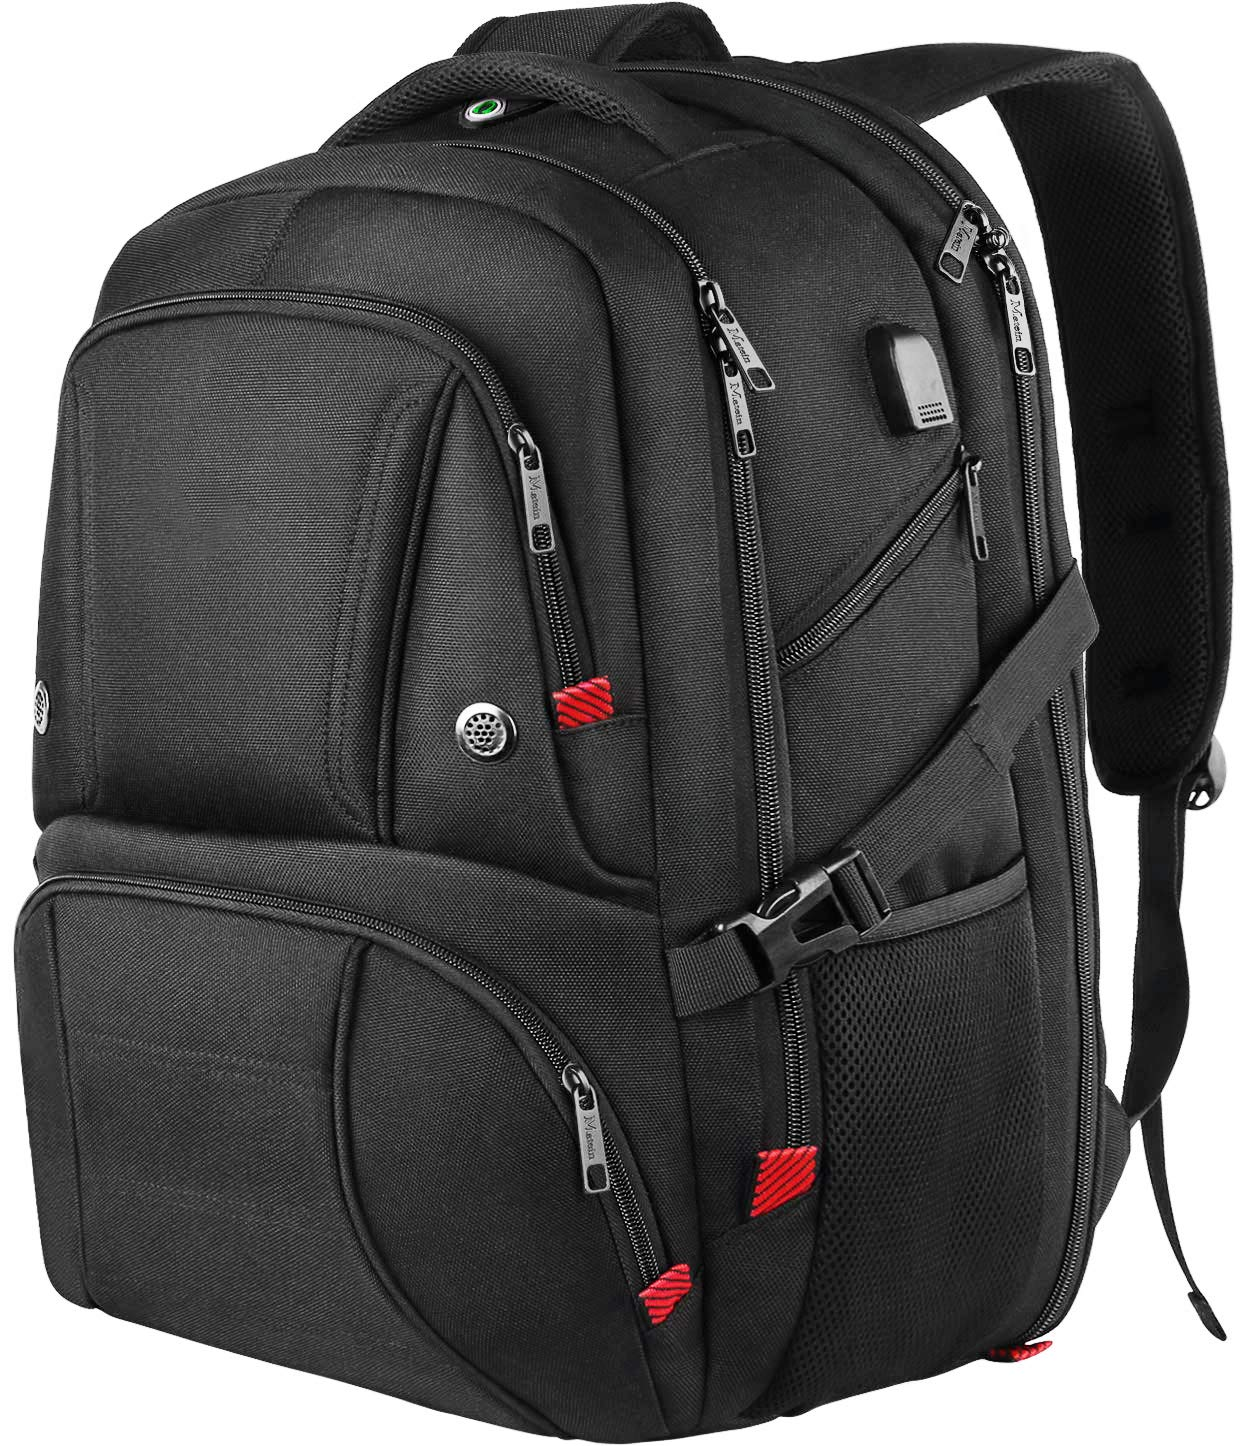 Extra Large School Laptop Backpack for Men, 18.4 Inch Durable College Backpack with USB Charging Port, TSA Friendly Large Travel Backpack for Men Women Student, Black